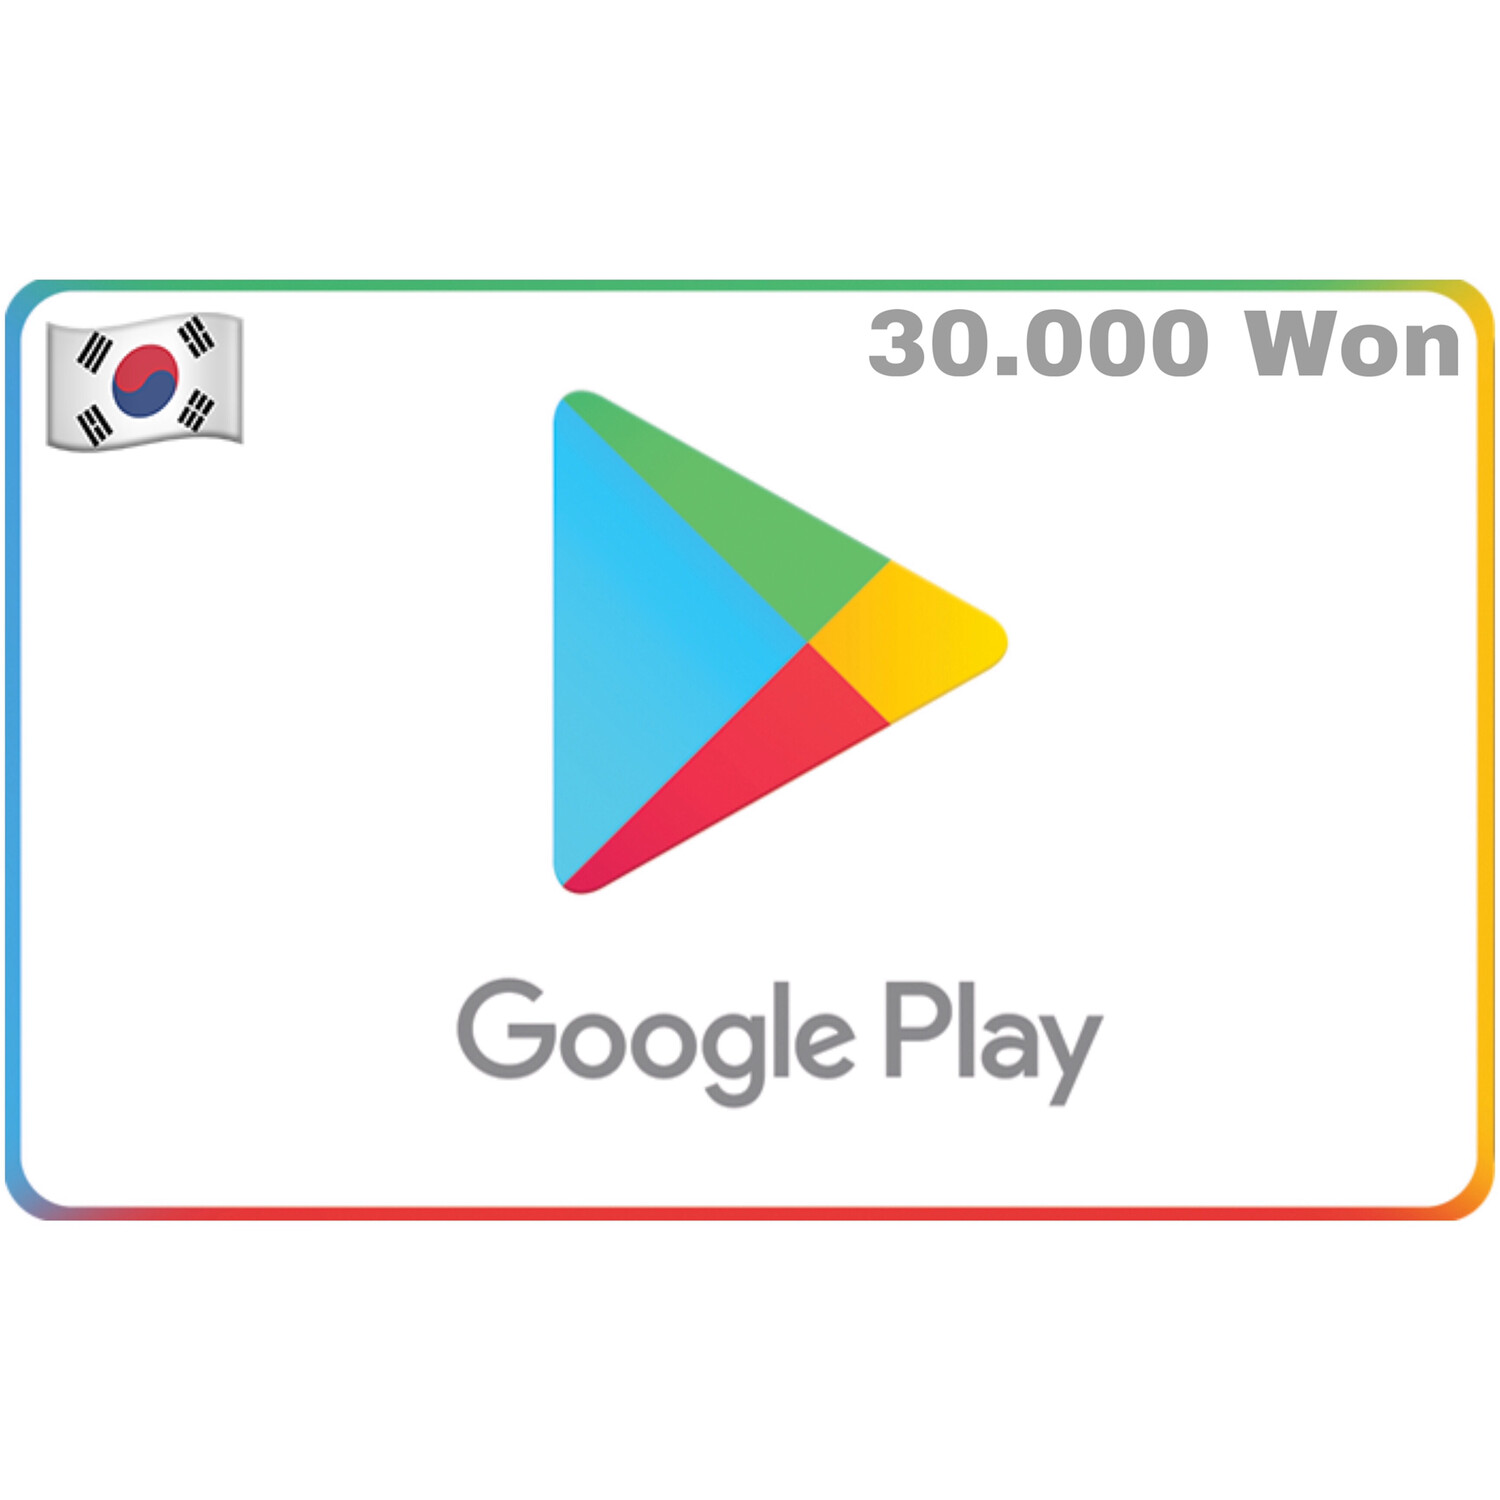 Google Play Korea 30,000 Won